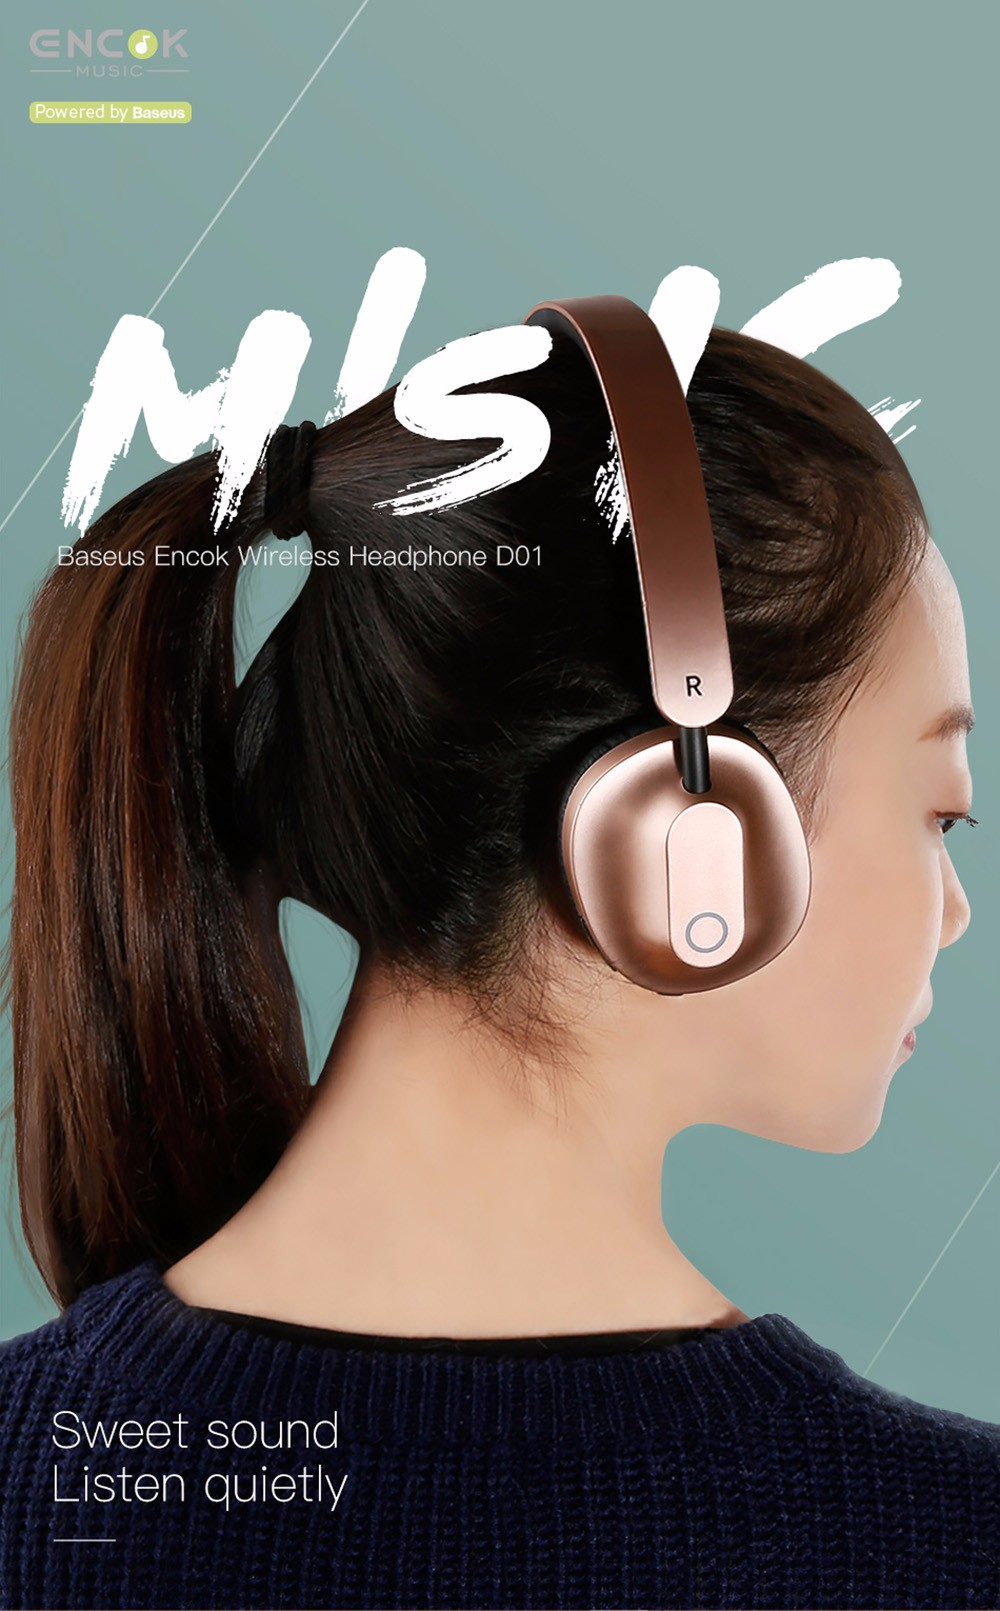 Baseus Encok D01 Foldable Wireless Bluetooth Headset On-ear Stereo Headphone with Mic - Gold